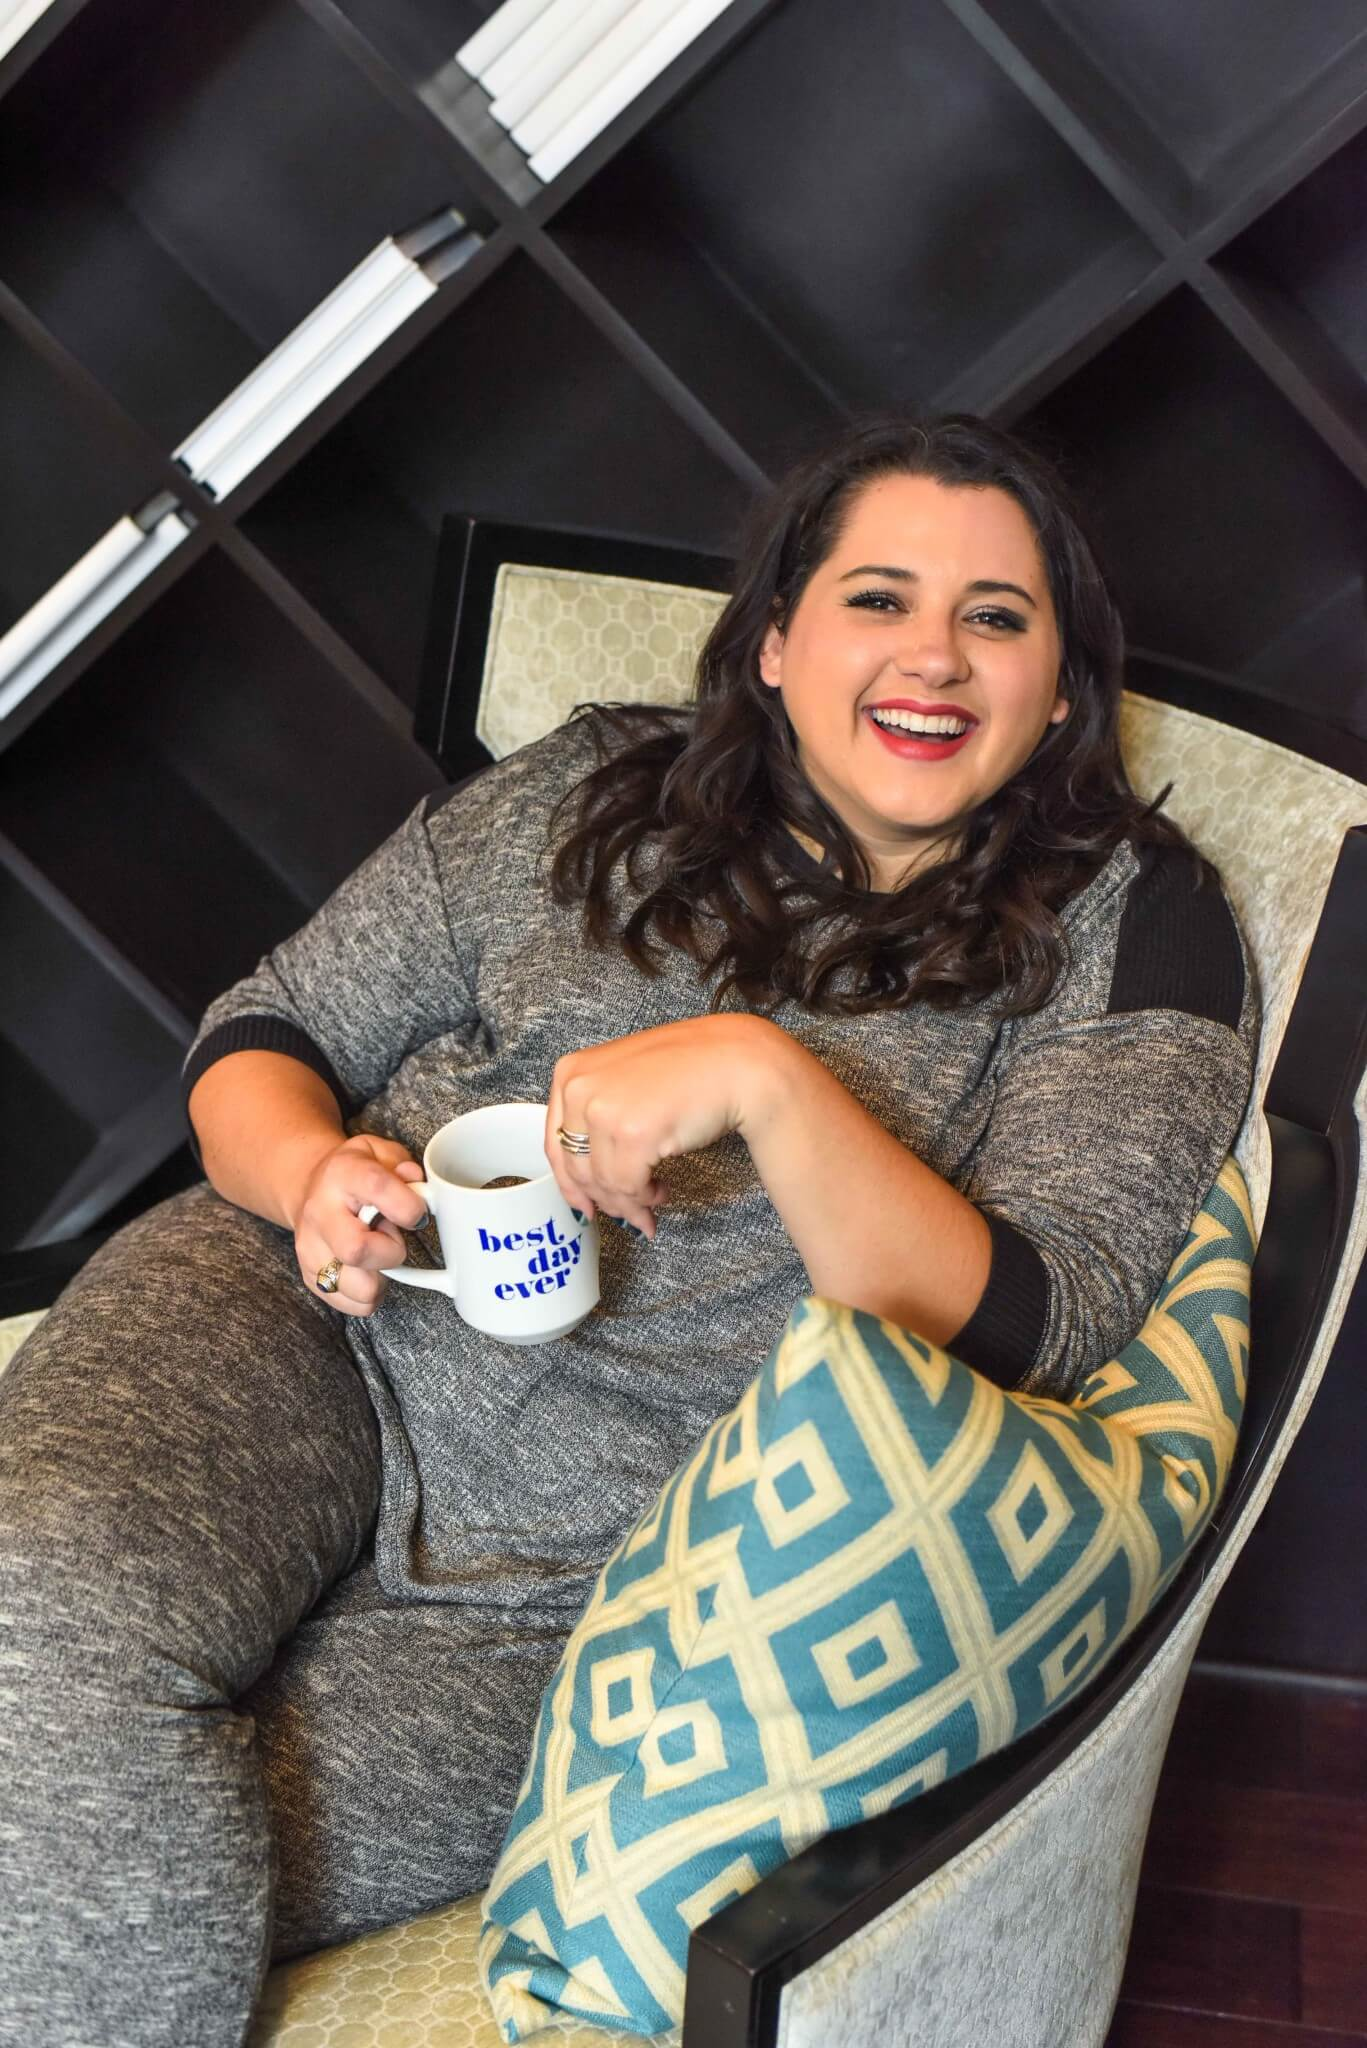 Looking for the perfect Thanksgiving Day pajama set? These grey plus size pajamas would be perfect for watching the Macy's Thanksgiving Day Parade. #thanksgivingstyle #thanksgiving #plussize